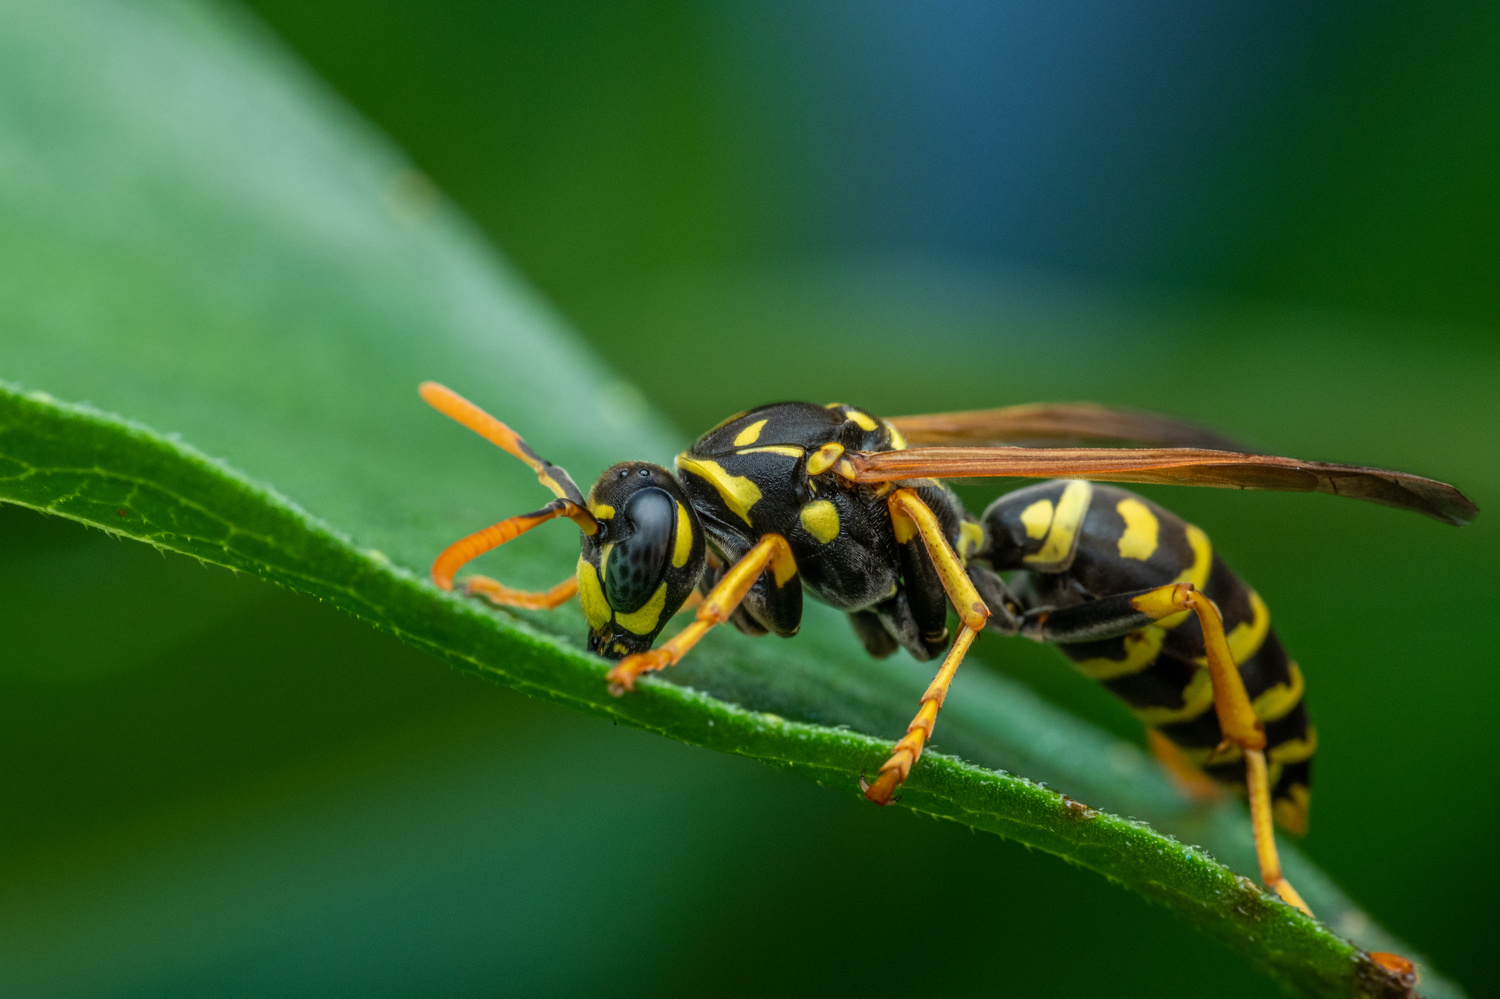 Wasp by Skyler Ewing